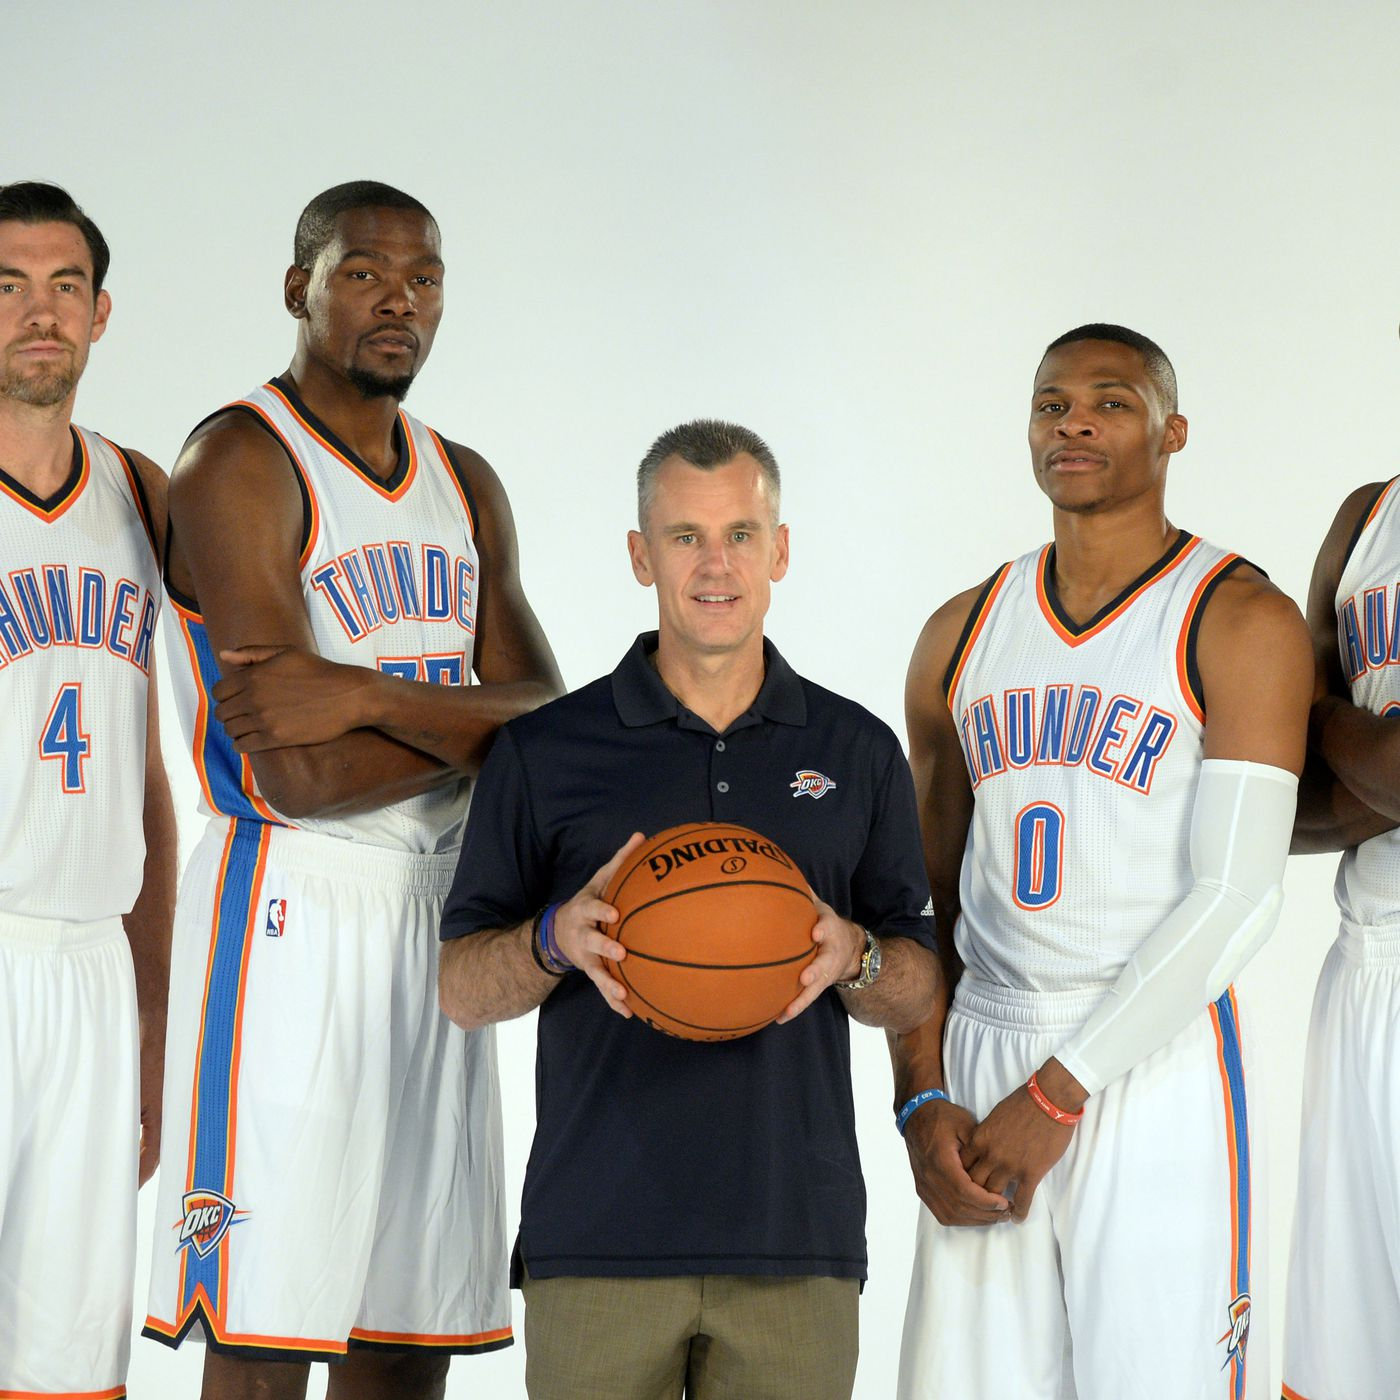 timeless design 68230 891cd Kevin Durant to return to OKC for Nick Collison's jersey ...